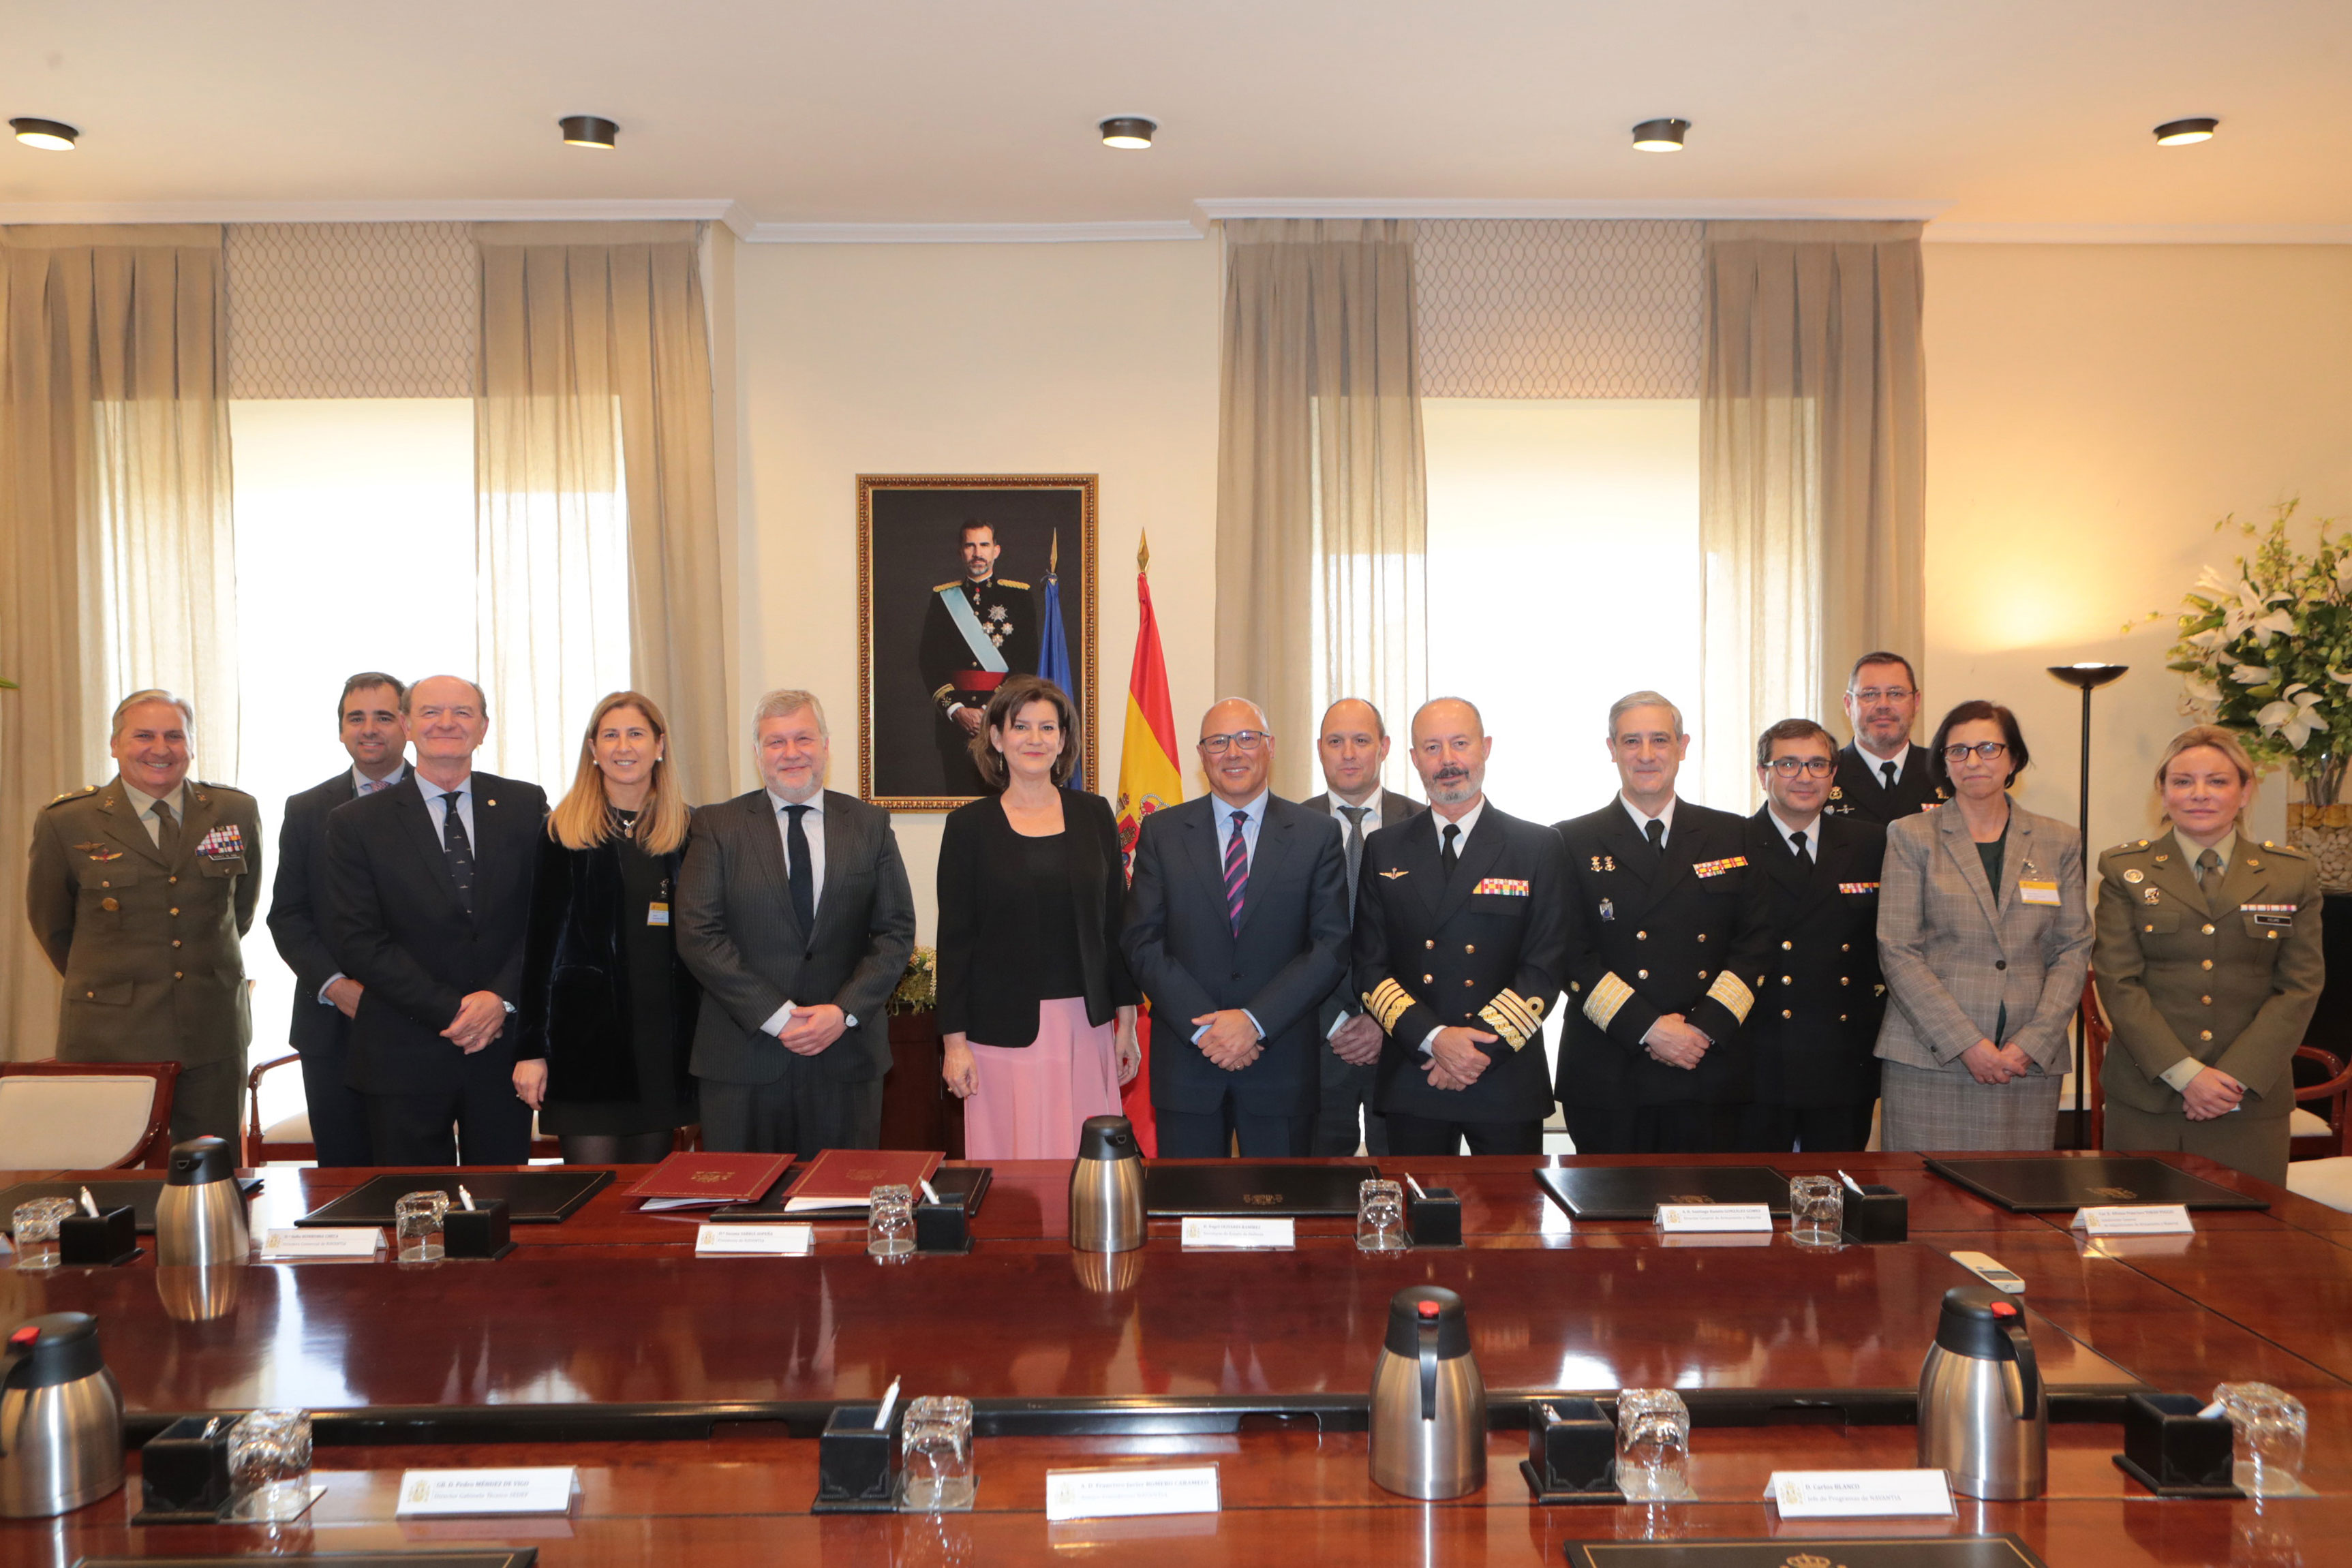 The signing of the contract between heads of both Navantia and the Ministry of Defense. Photo via Navantia.